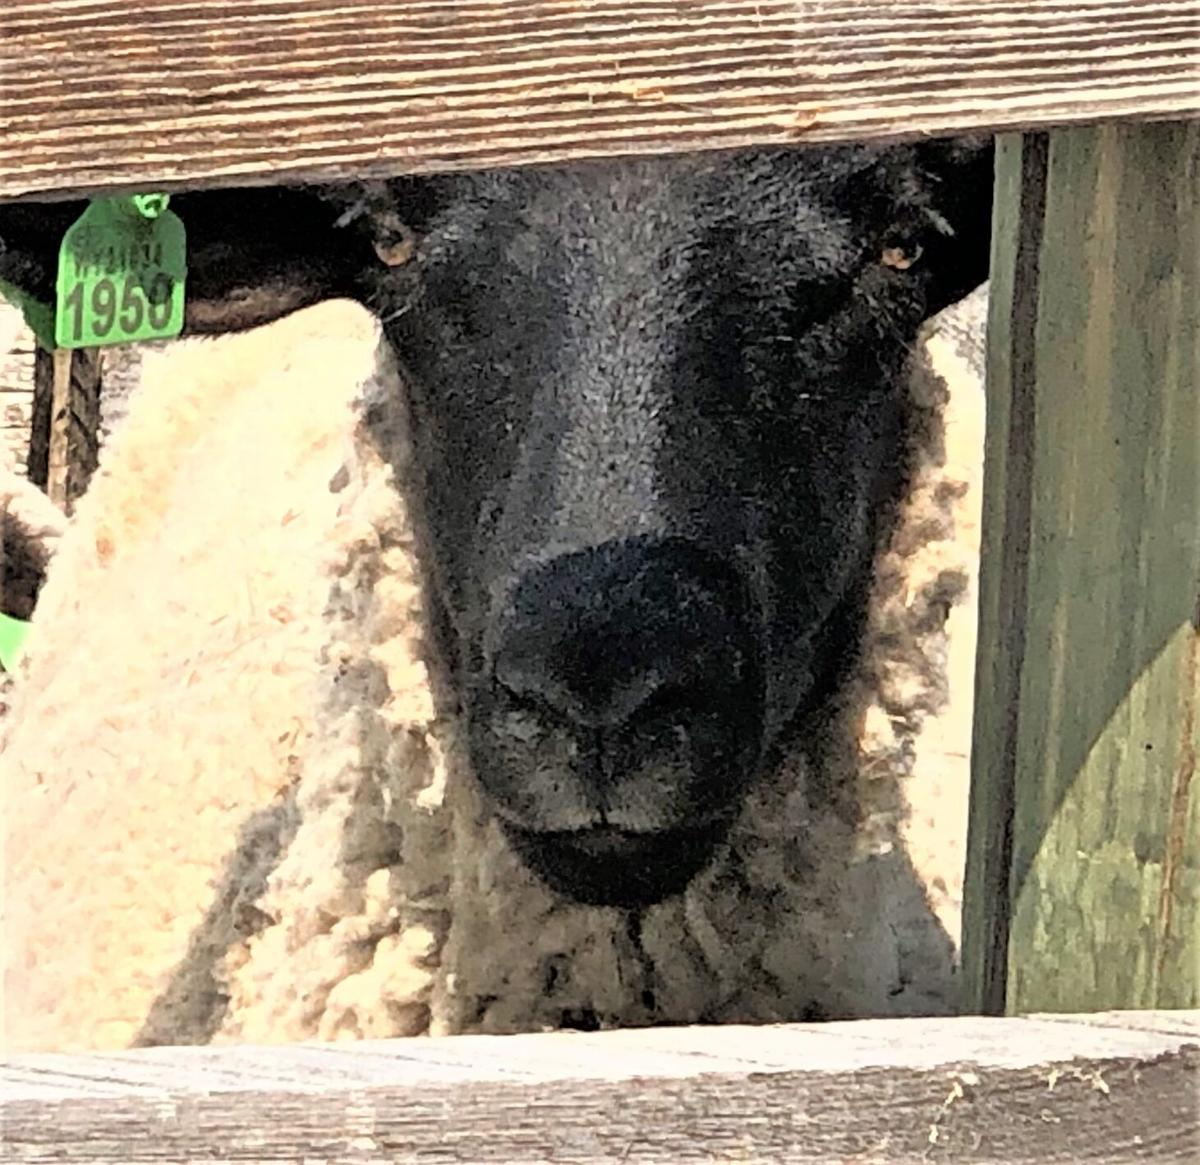 S.D. sheep farmers hurting as pandemic reduces demand and processing capacity